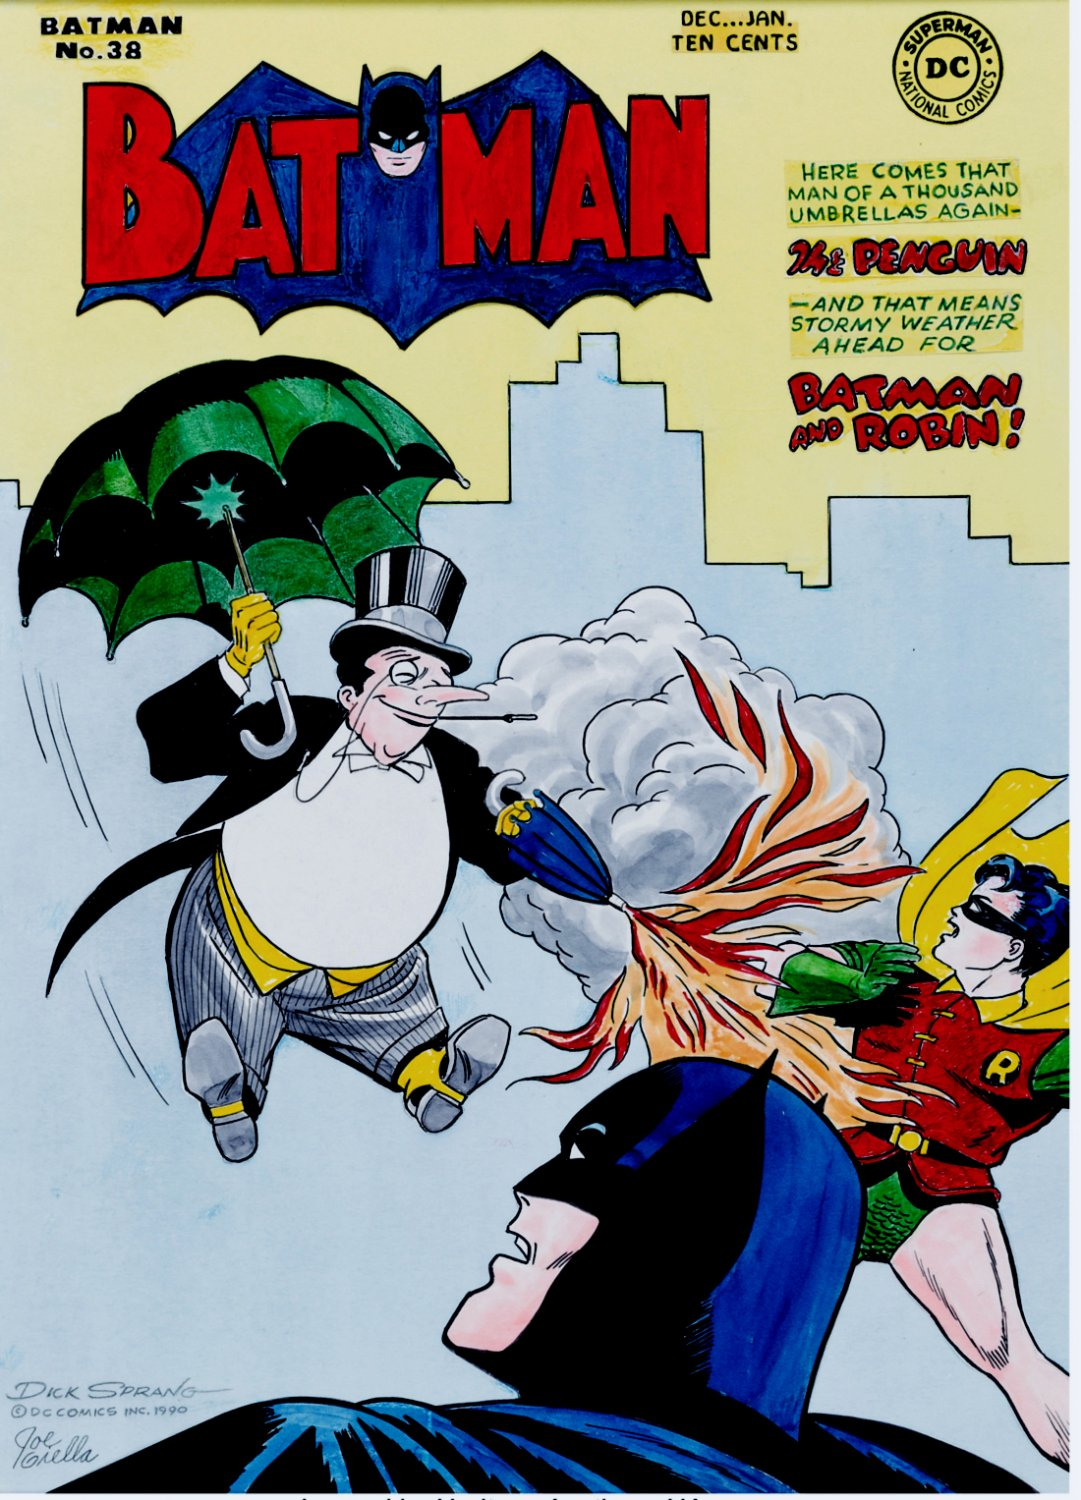 Batman #38 Large Cover Recreation (Batman & Robin Vs. The Penguin!) 1990